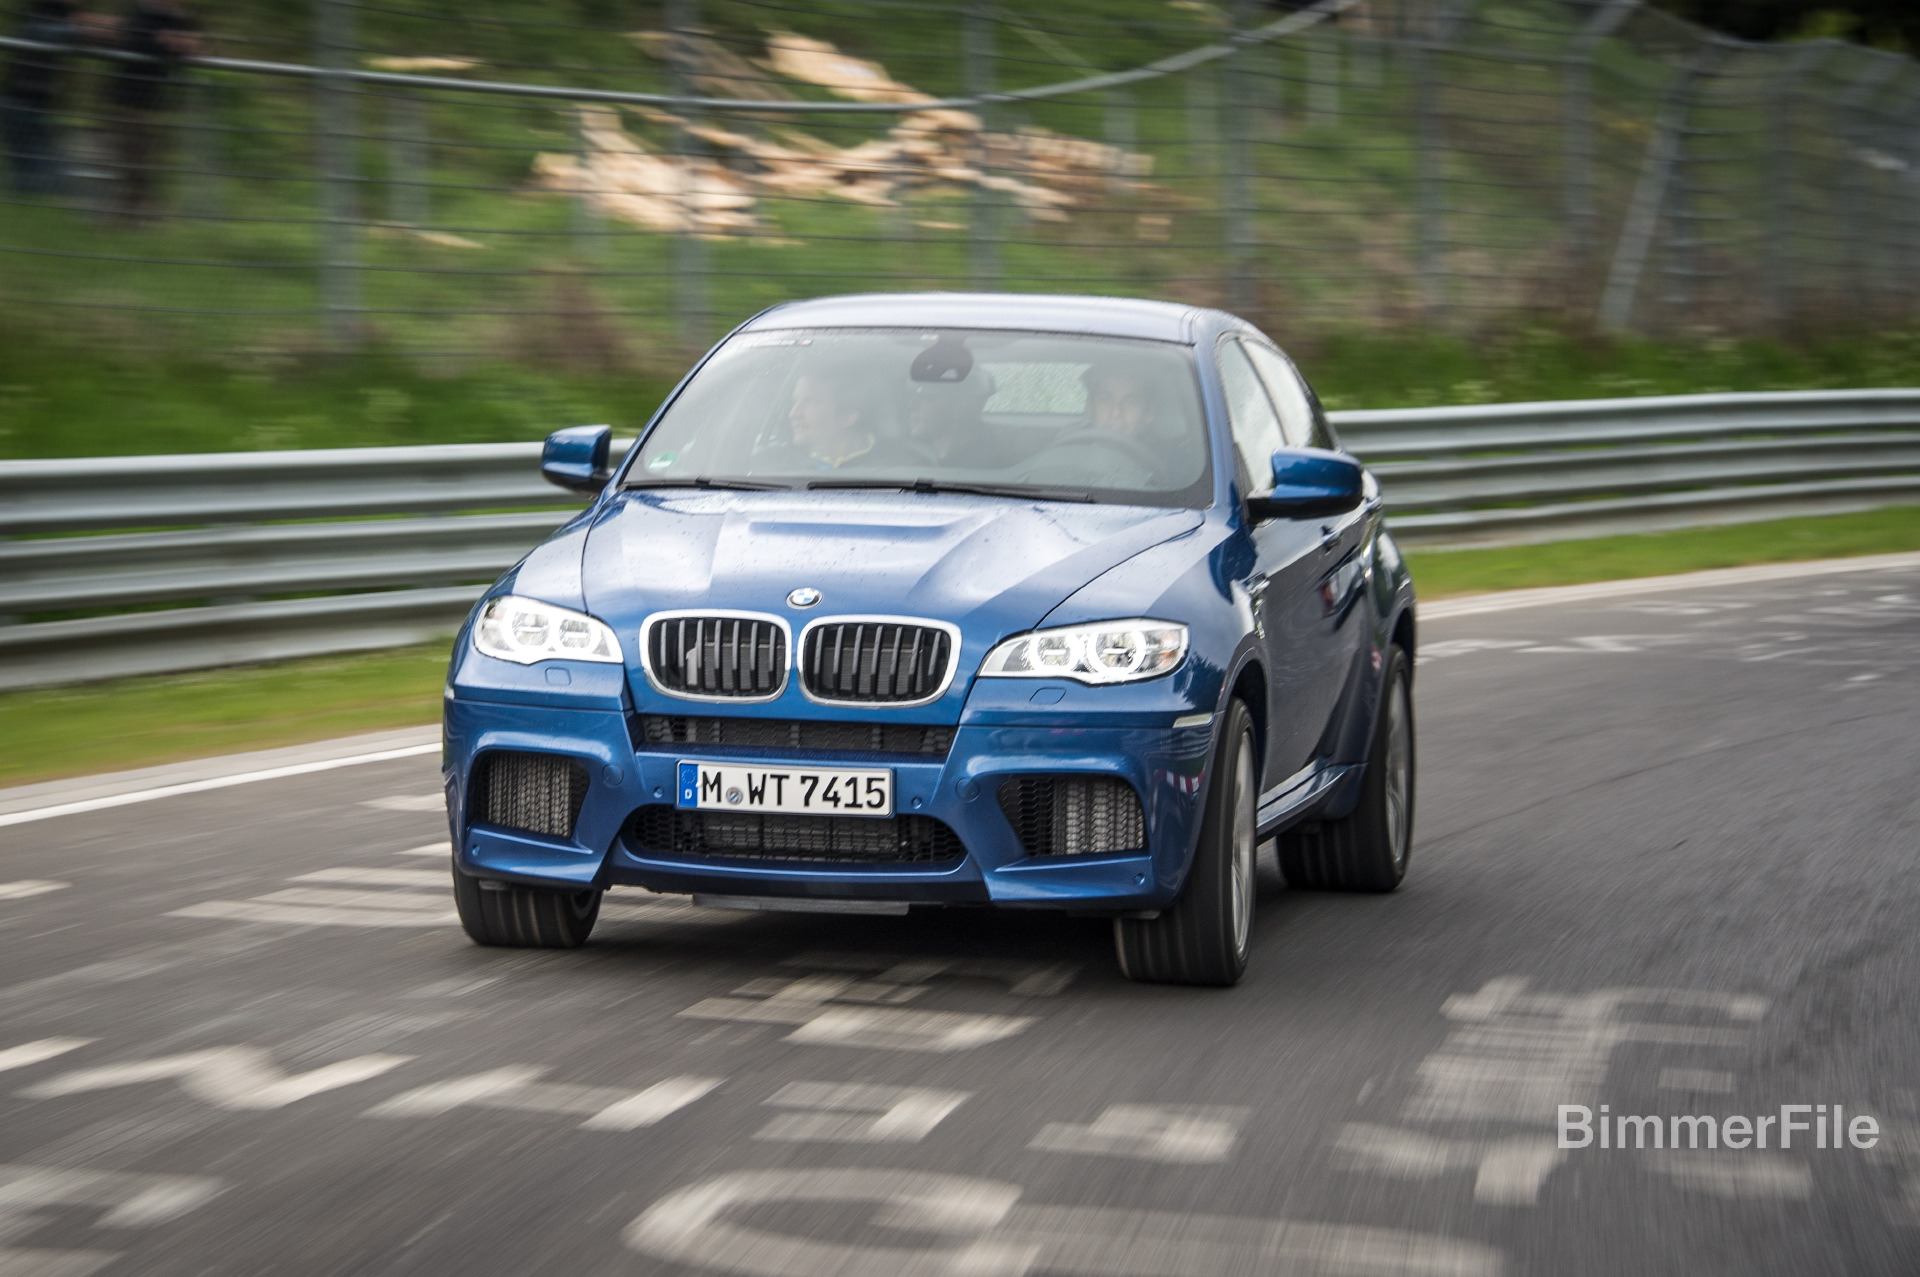 bmw_m_nbg_2012_2-104